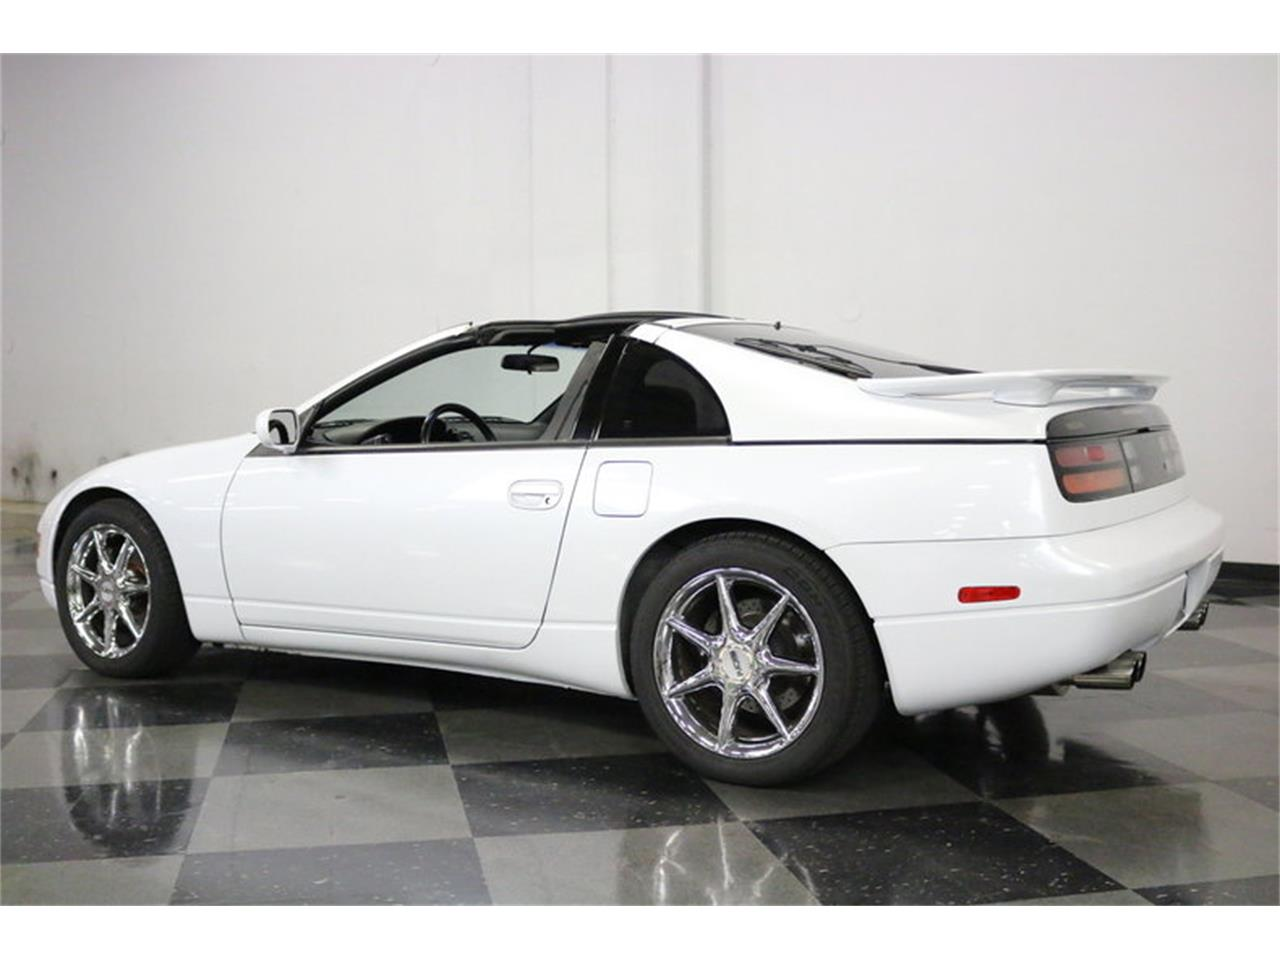 Large Picture of 1995 Nissan 300ZX located in Texas - $21,995.00 Offered by Streetside Classics - Dallas / Fort Worth - NIW7